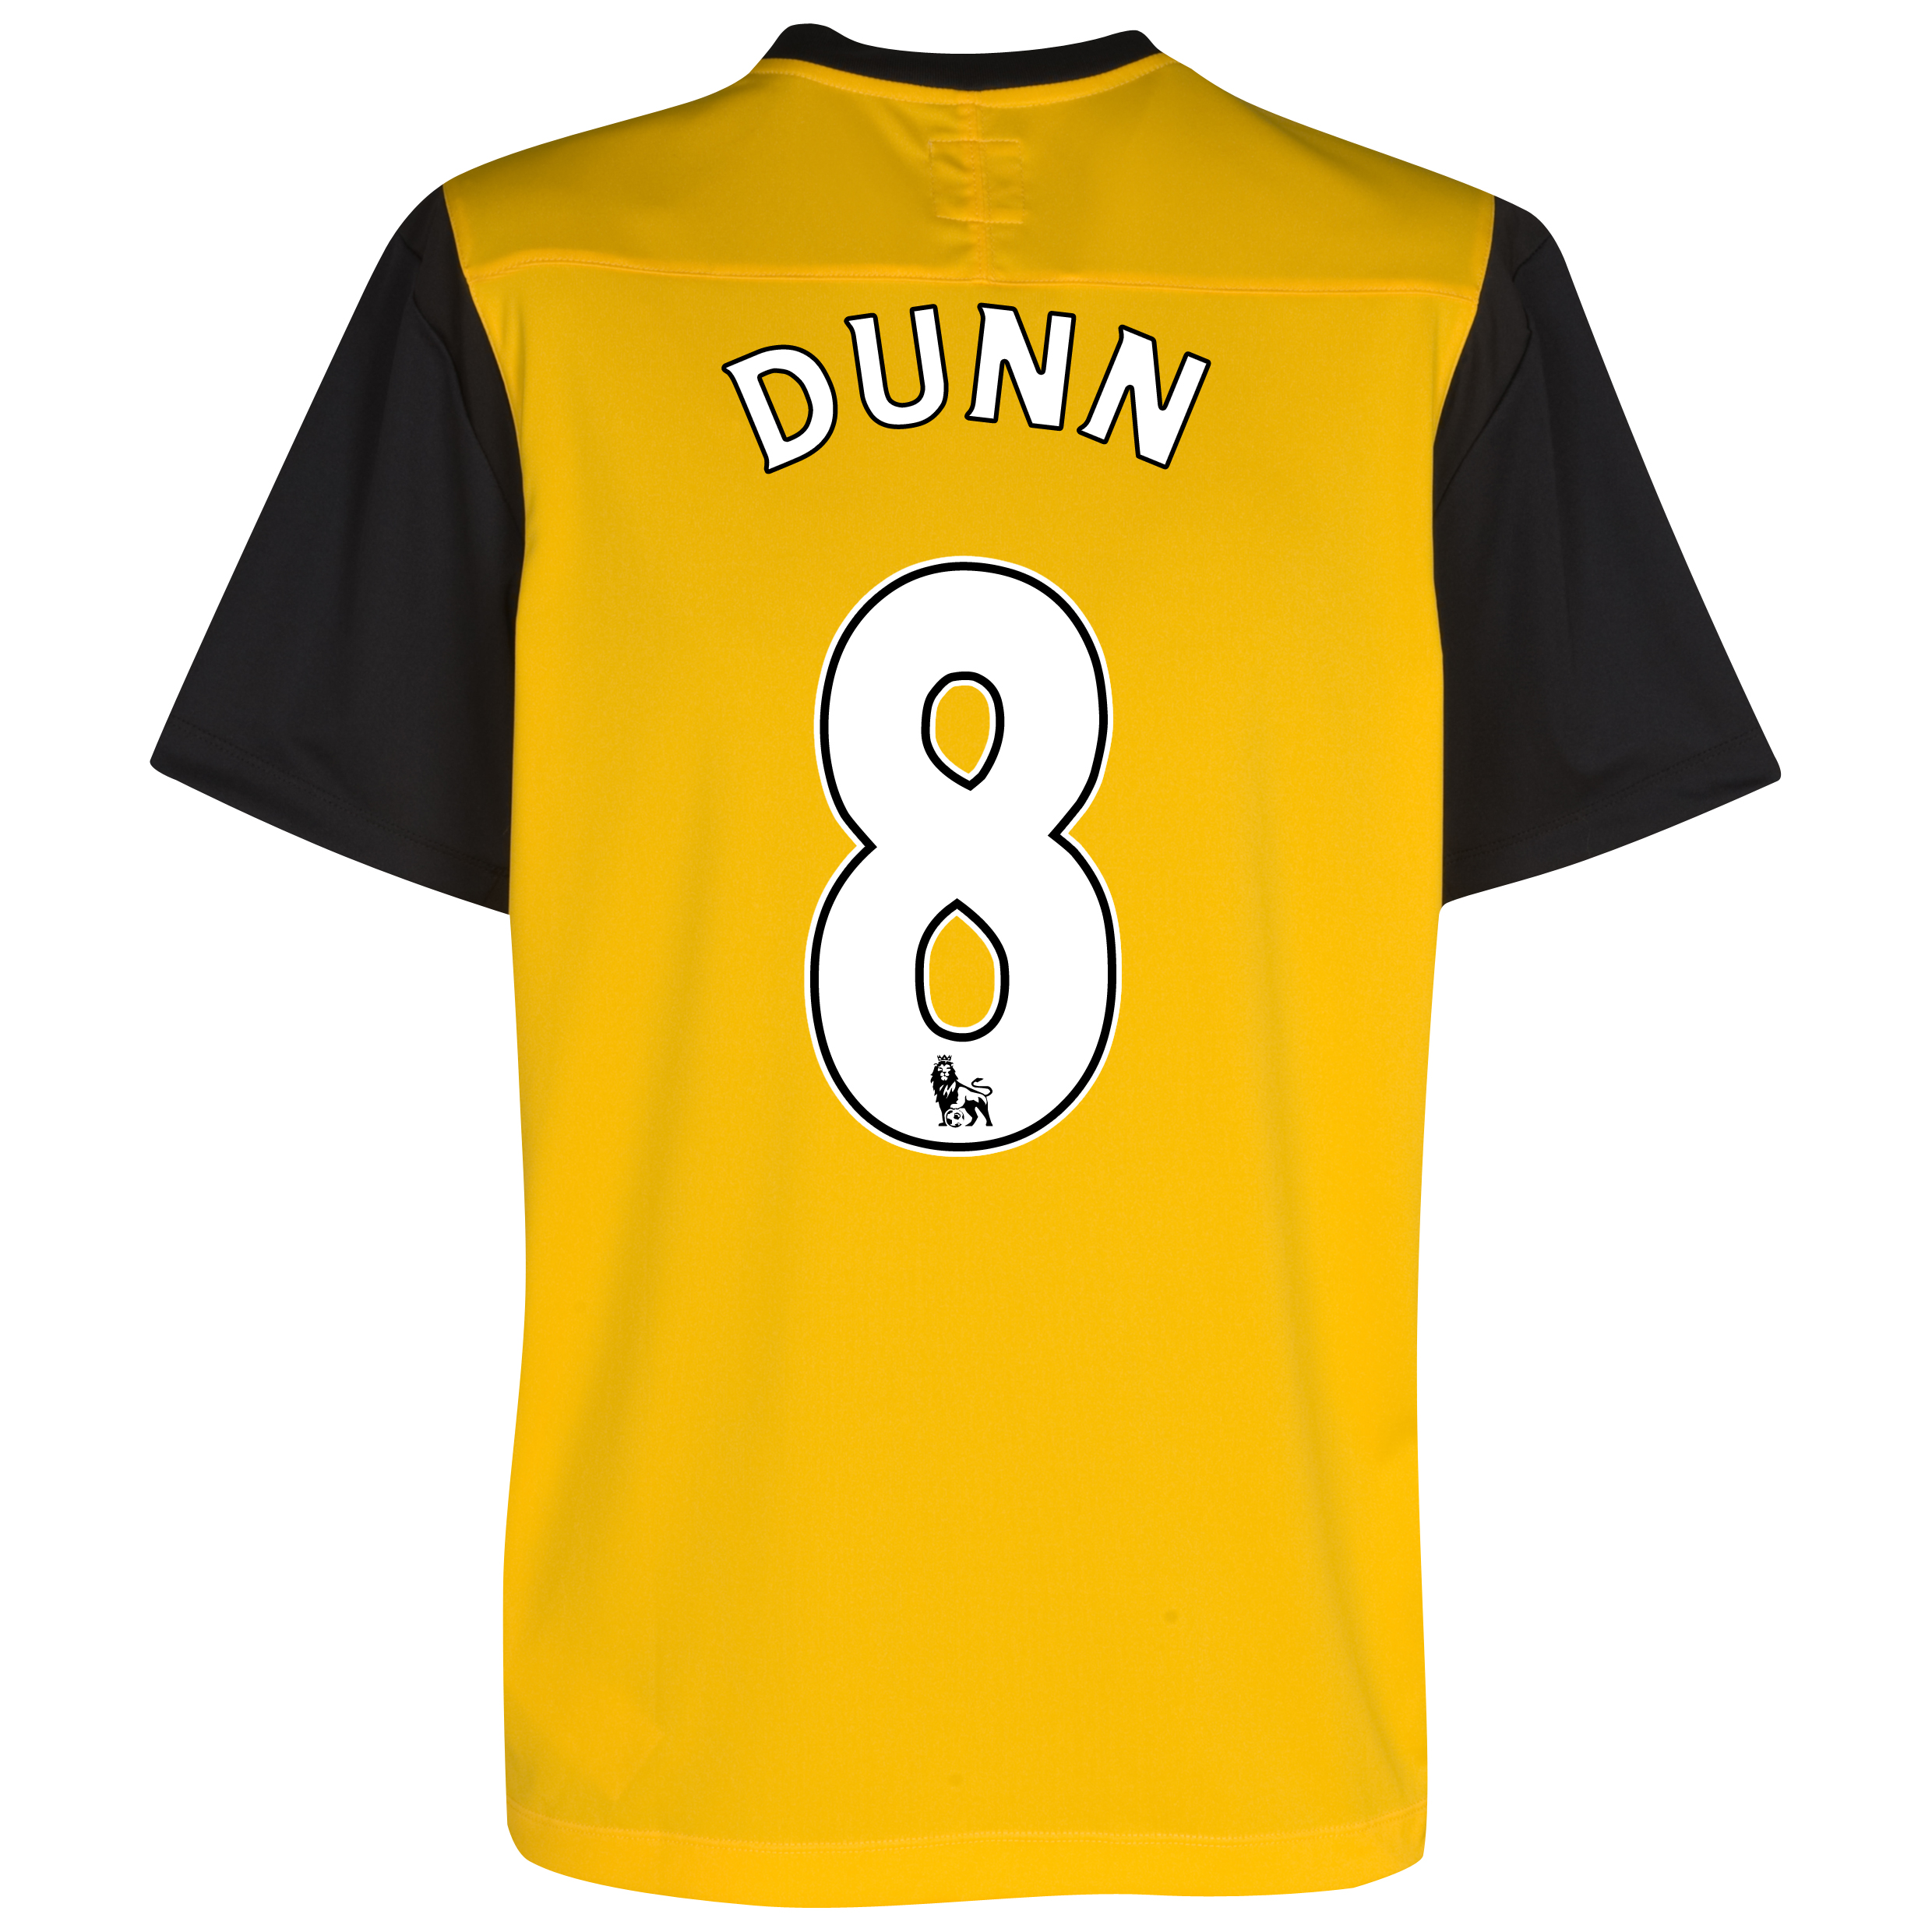 Blackburn Rovers Away Shirt 2011/12 with Dunn 8 printing